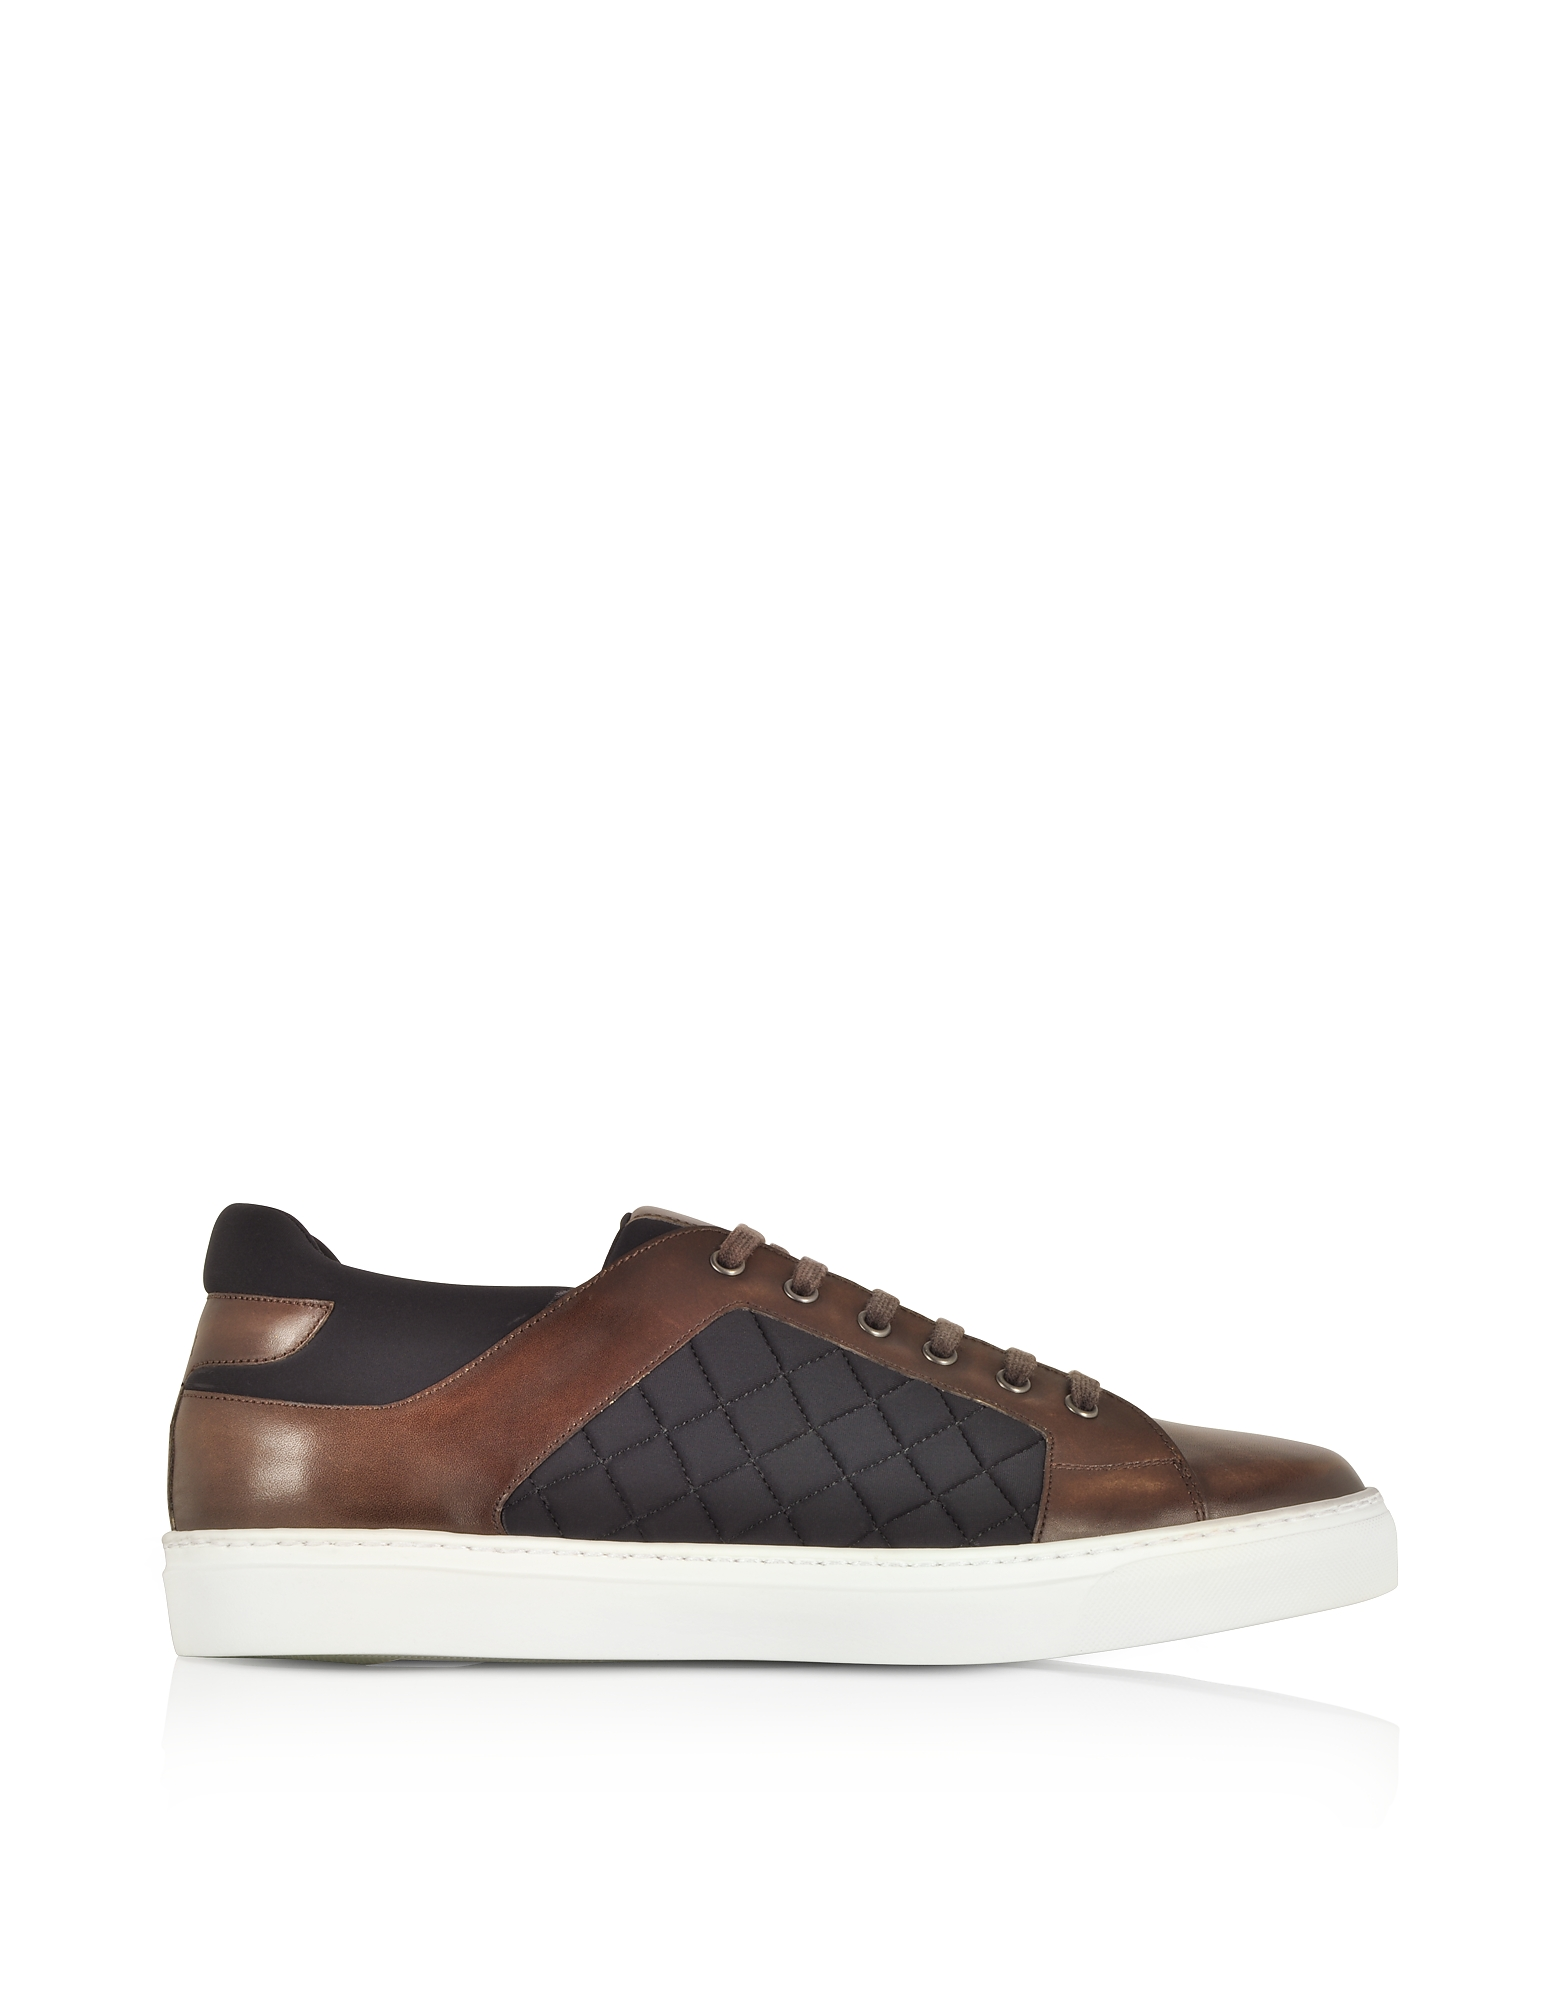 Coffee Brown Leather and Quilted Nylon Men's Sneakers